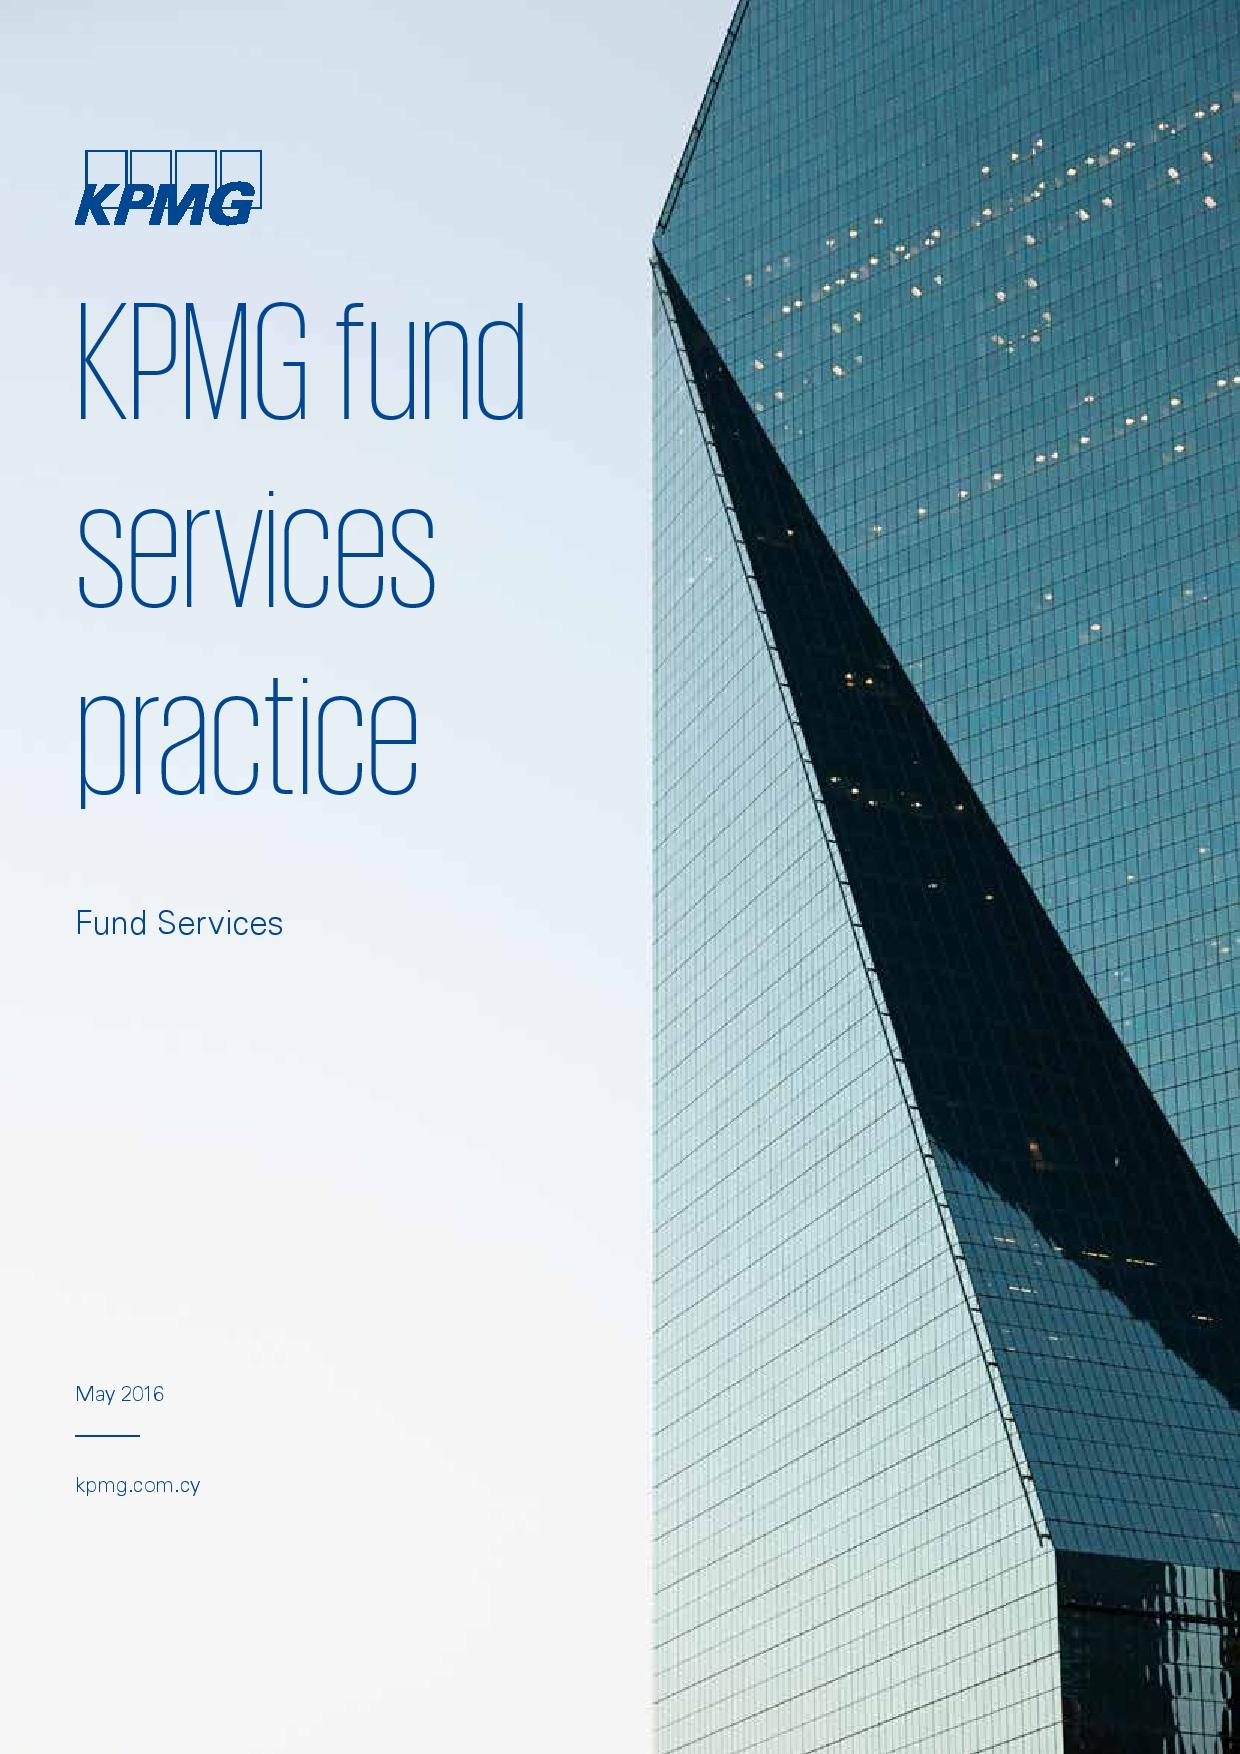 KPMG Fund Services Practice (2016 edition)